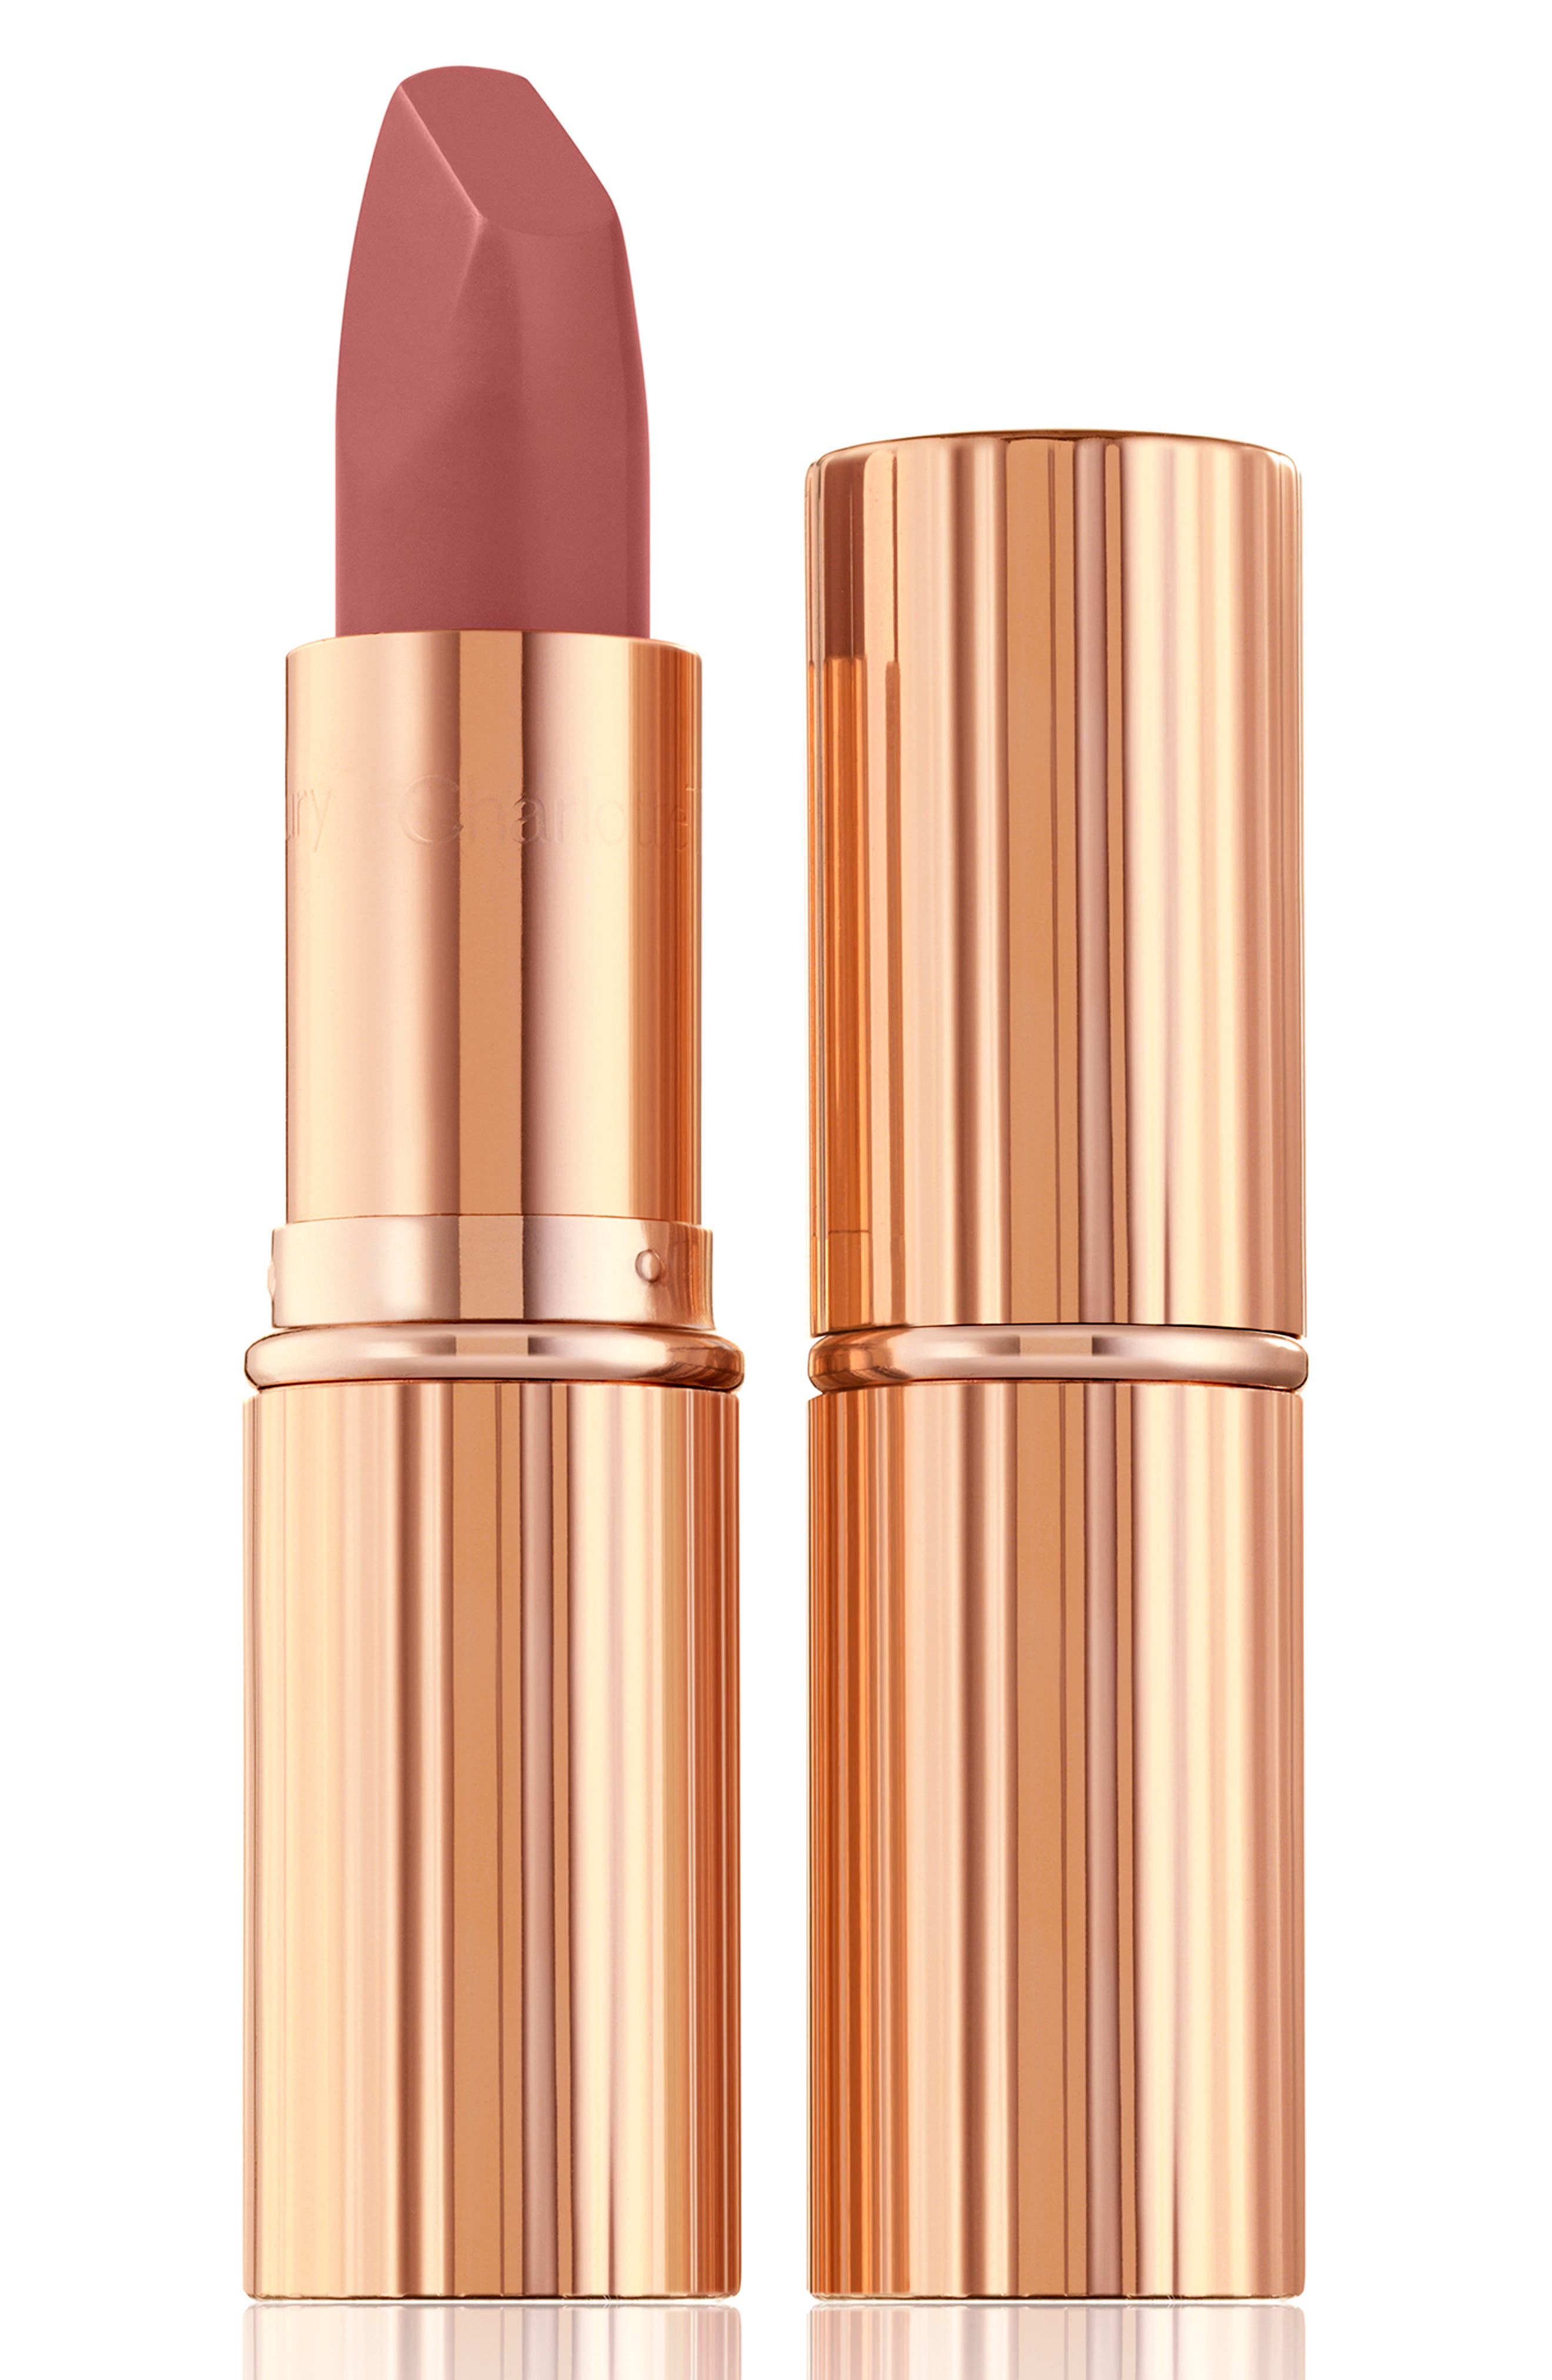 Image of CHARLOTTE TILBURY Matte Revolution Lipstick - Pillow Talk Medium